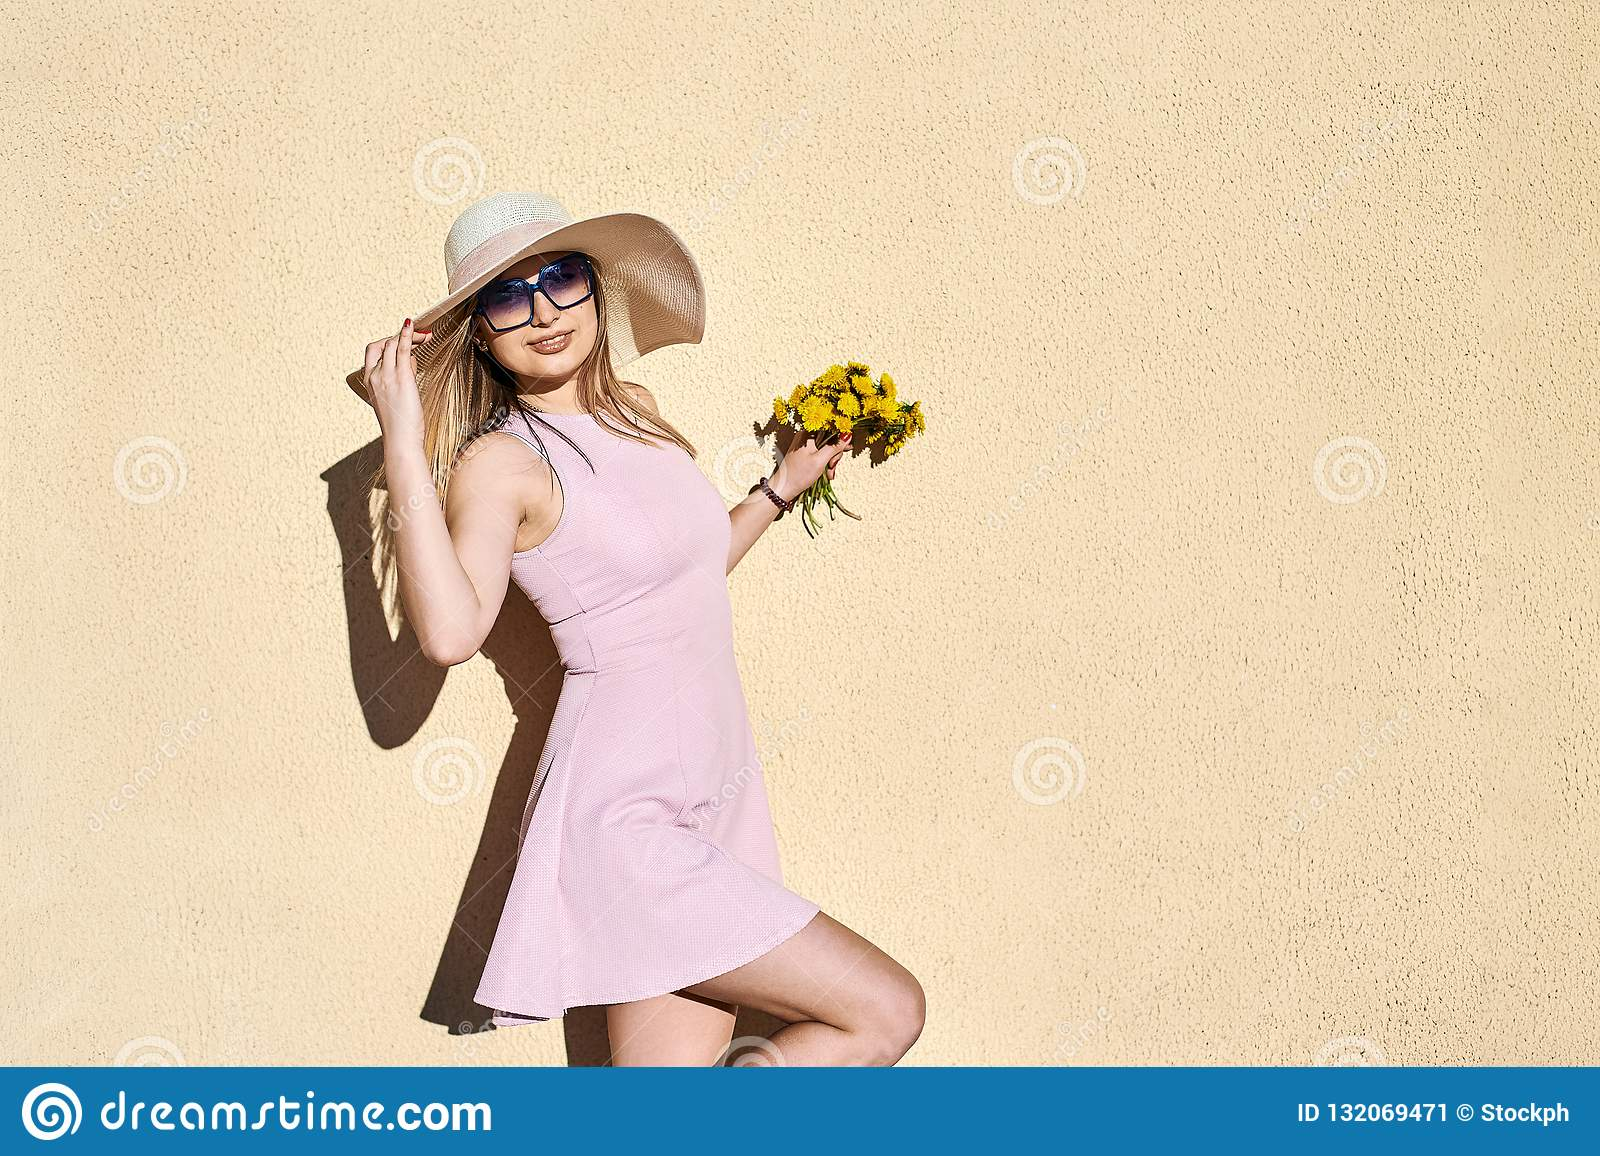 Bbeautiful, lovely, girl in a pink dress, in a straw hat smiling, posing portrait against a yellow wall